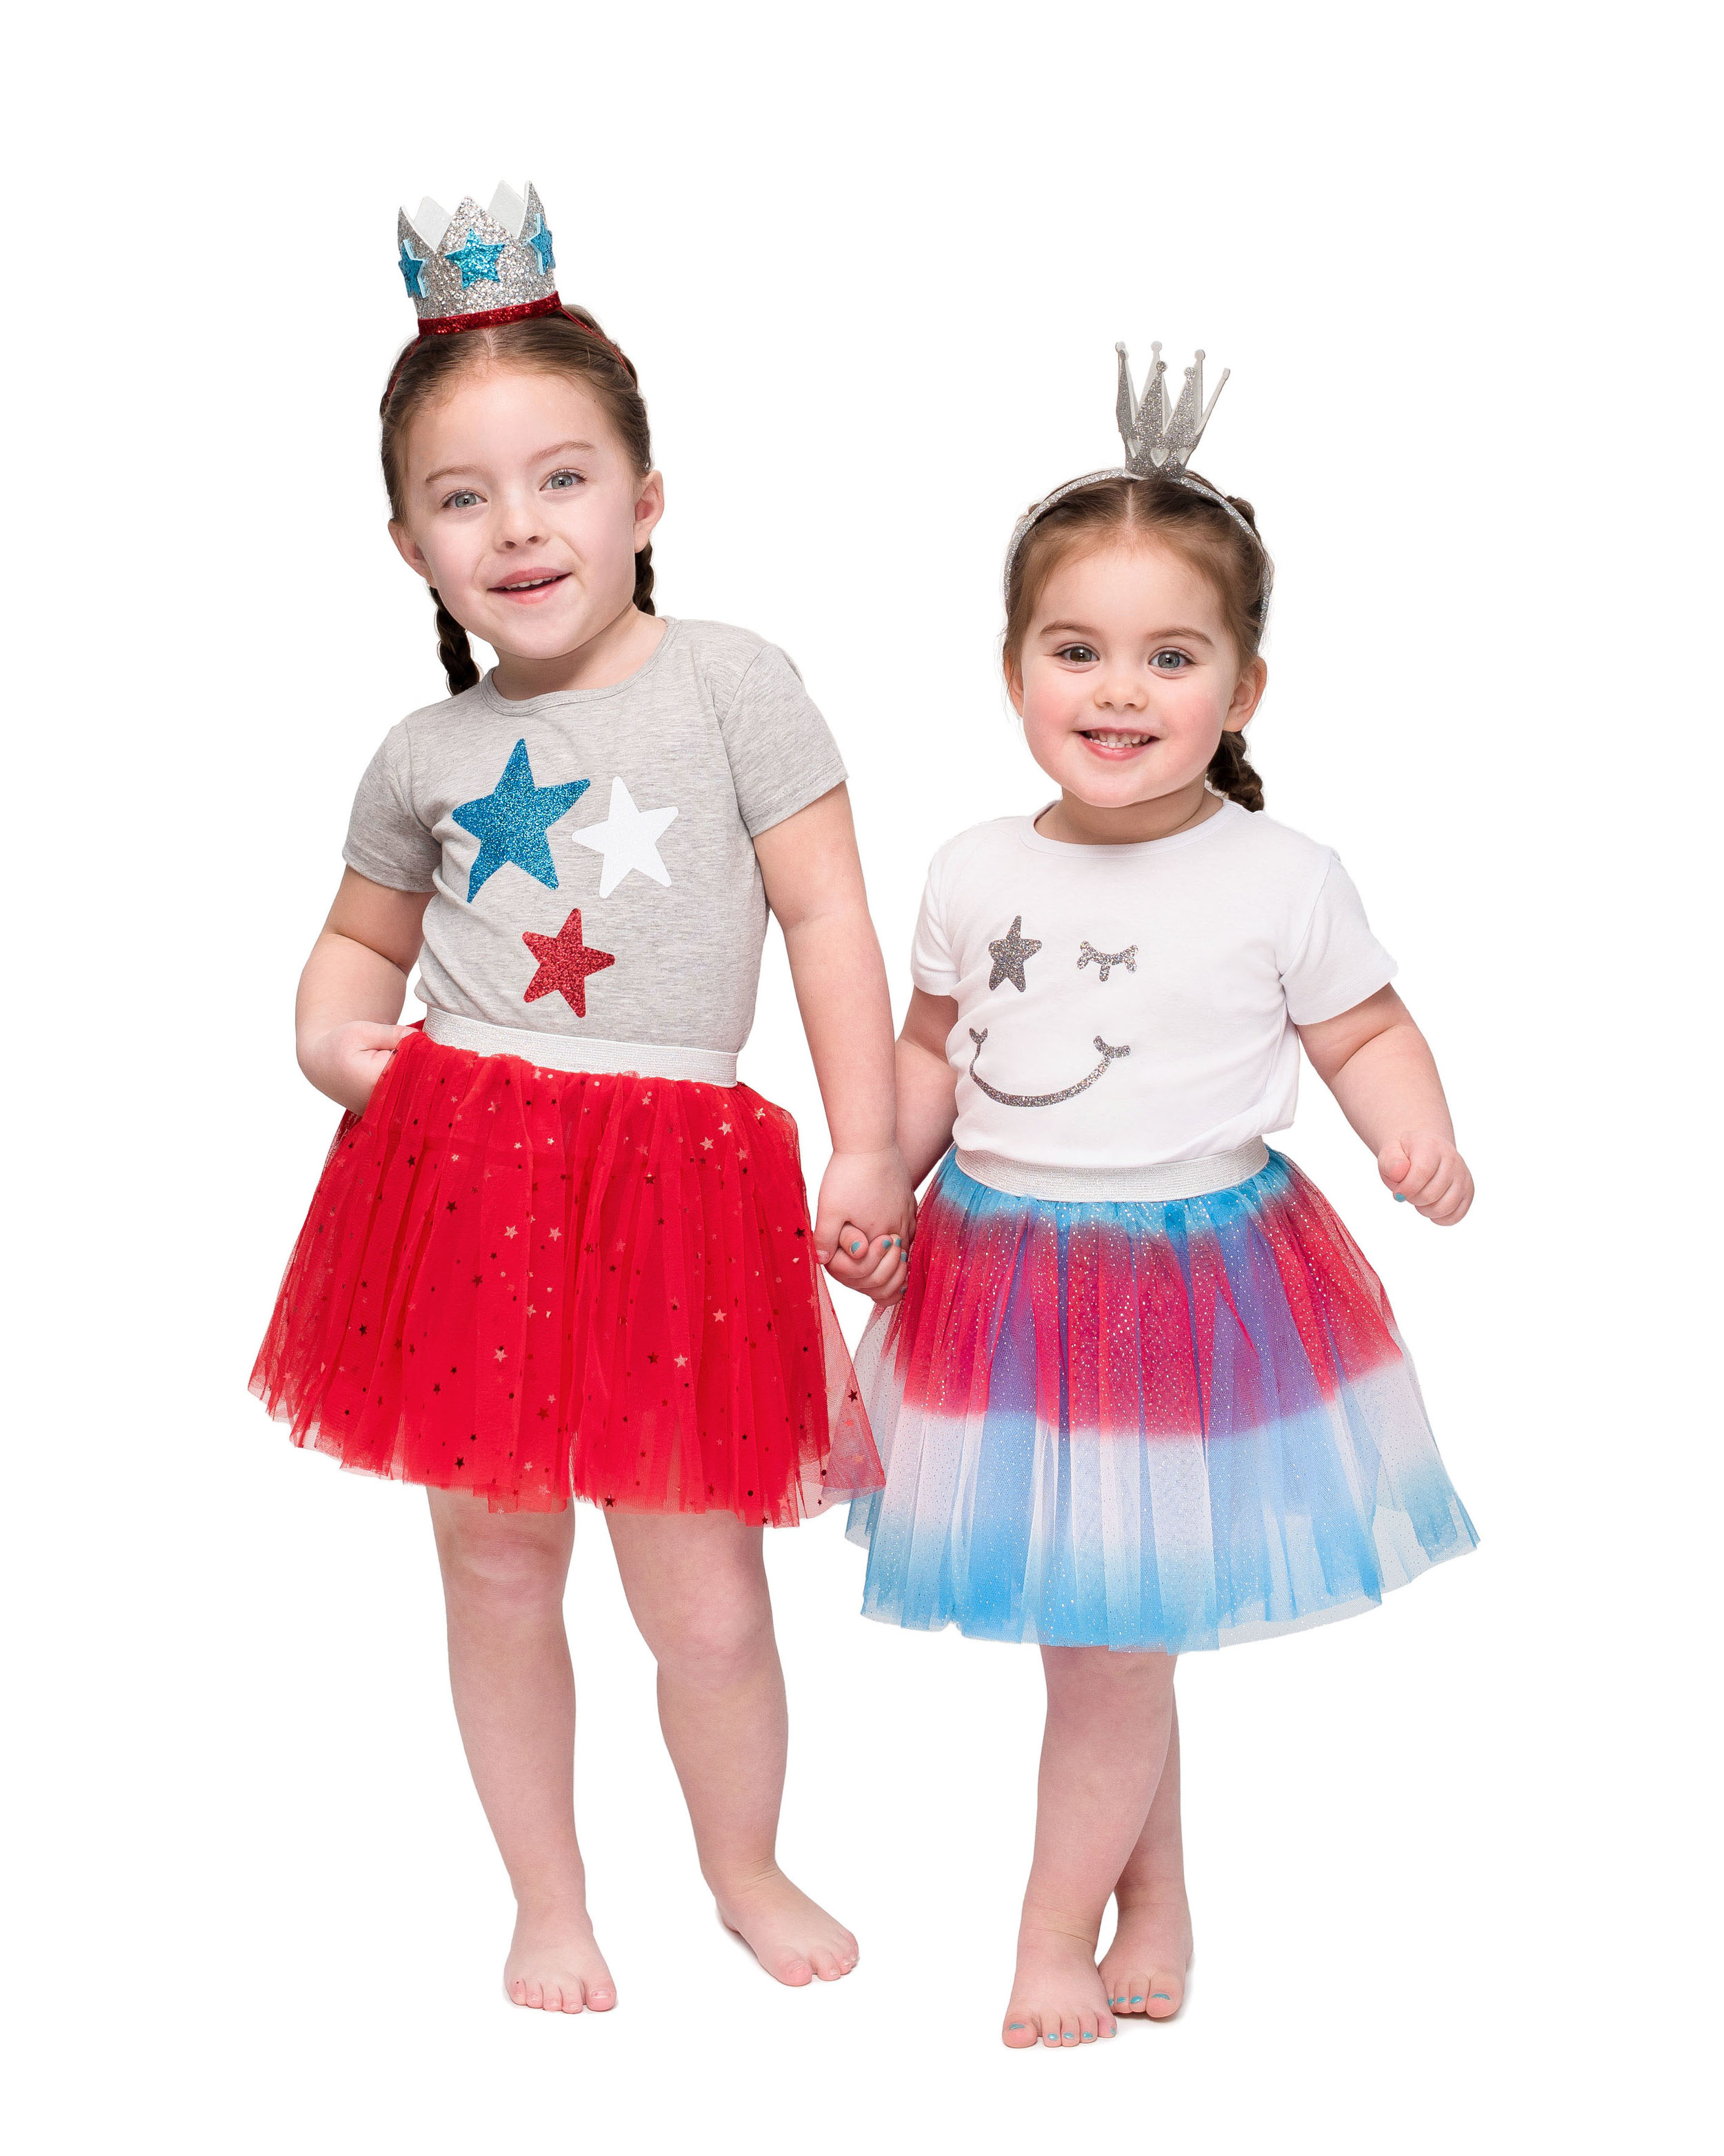 -Sweet Wink Lifestyle Image Stars and Stripes Collection (1).jpg